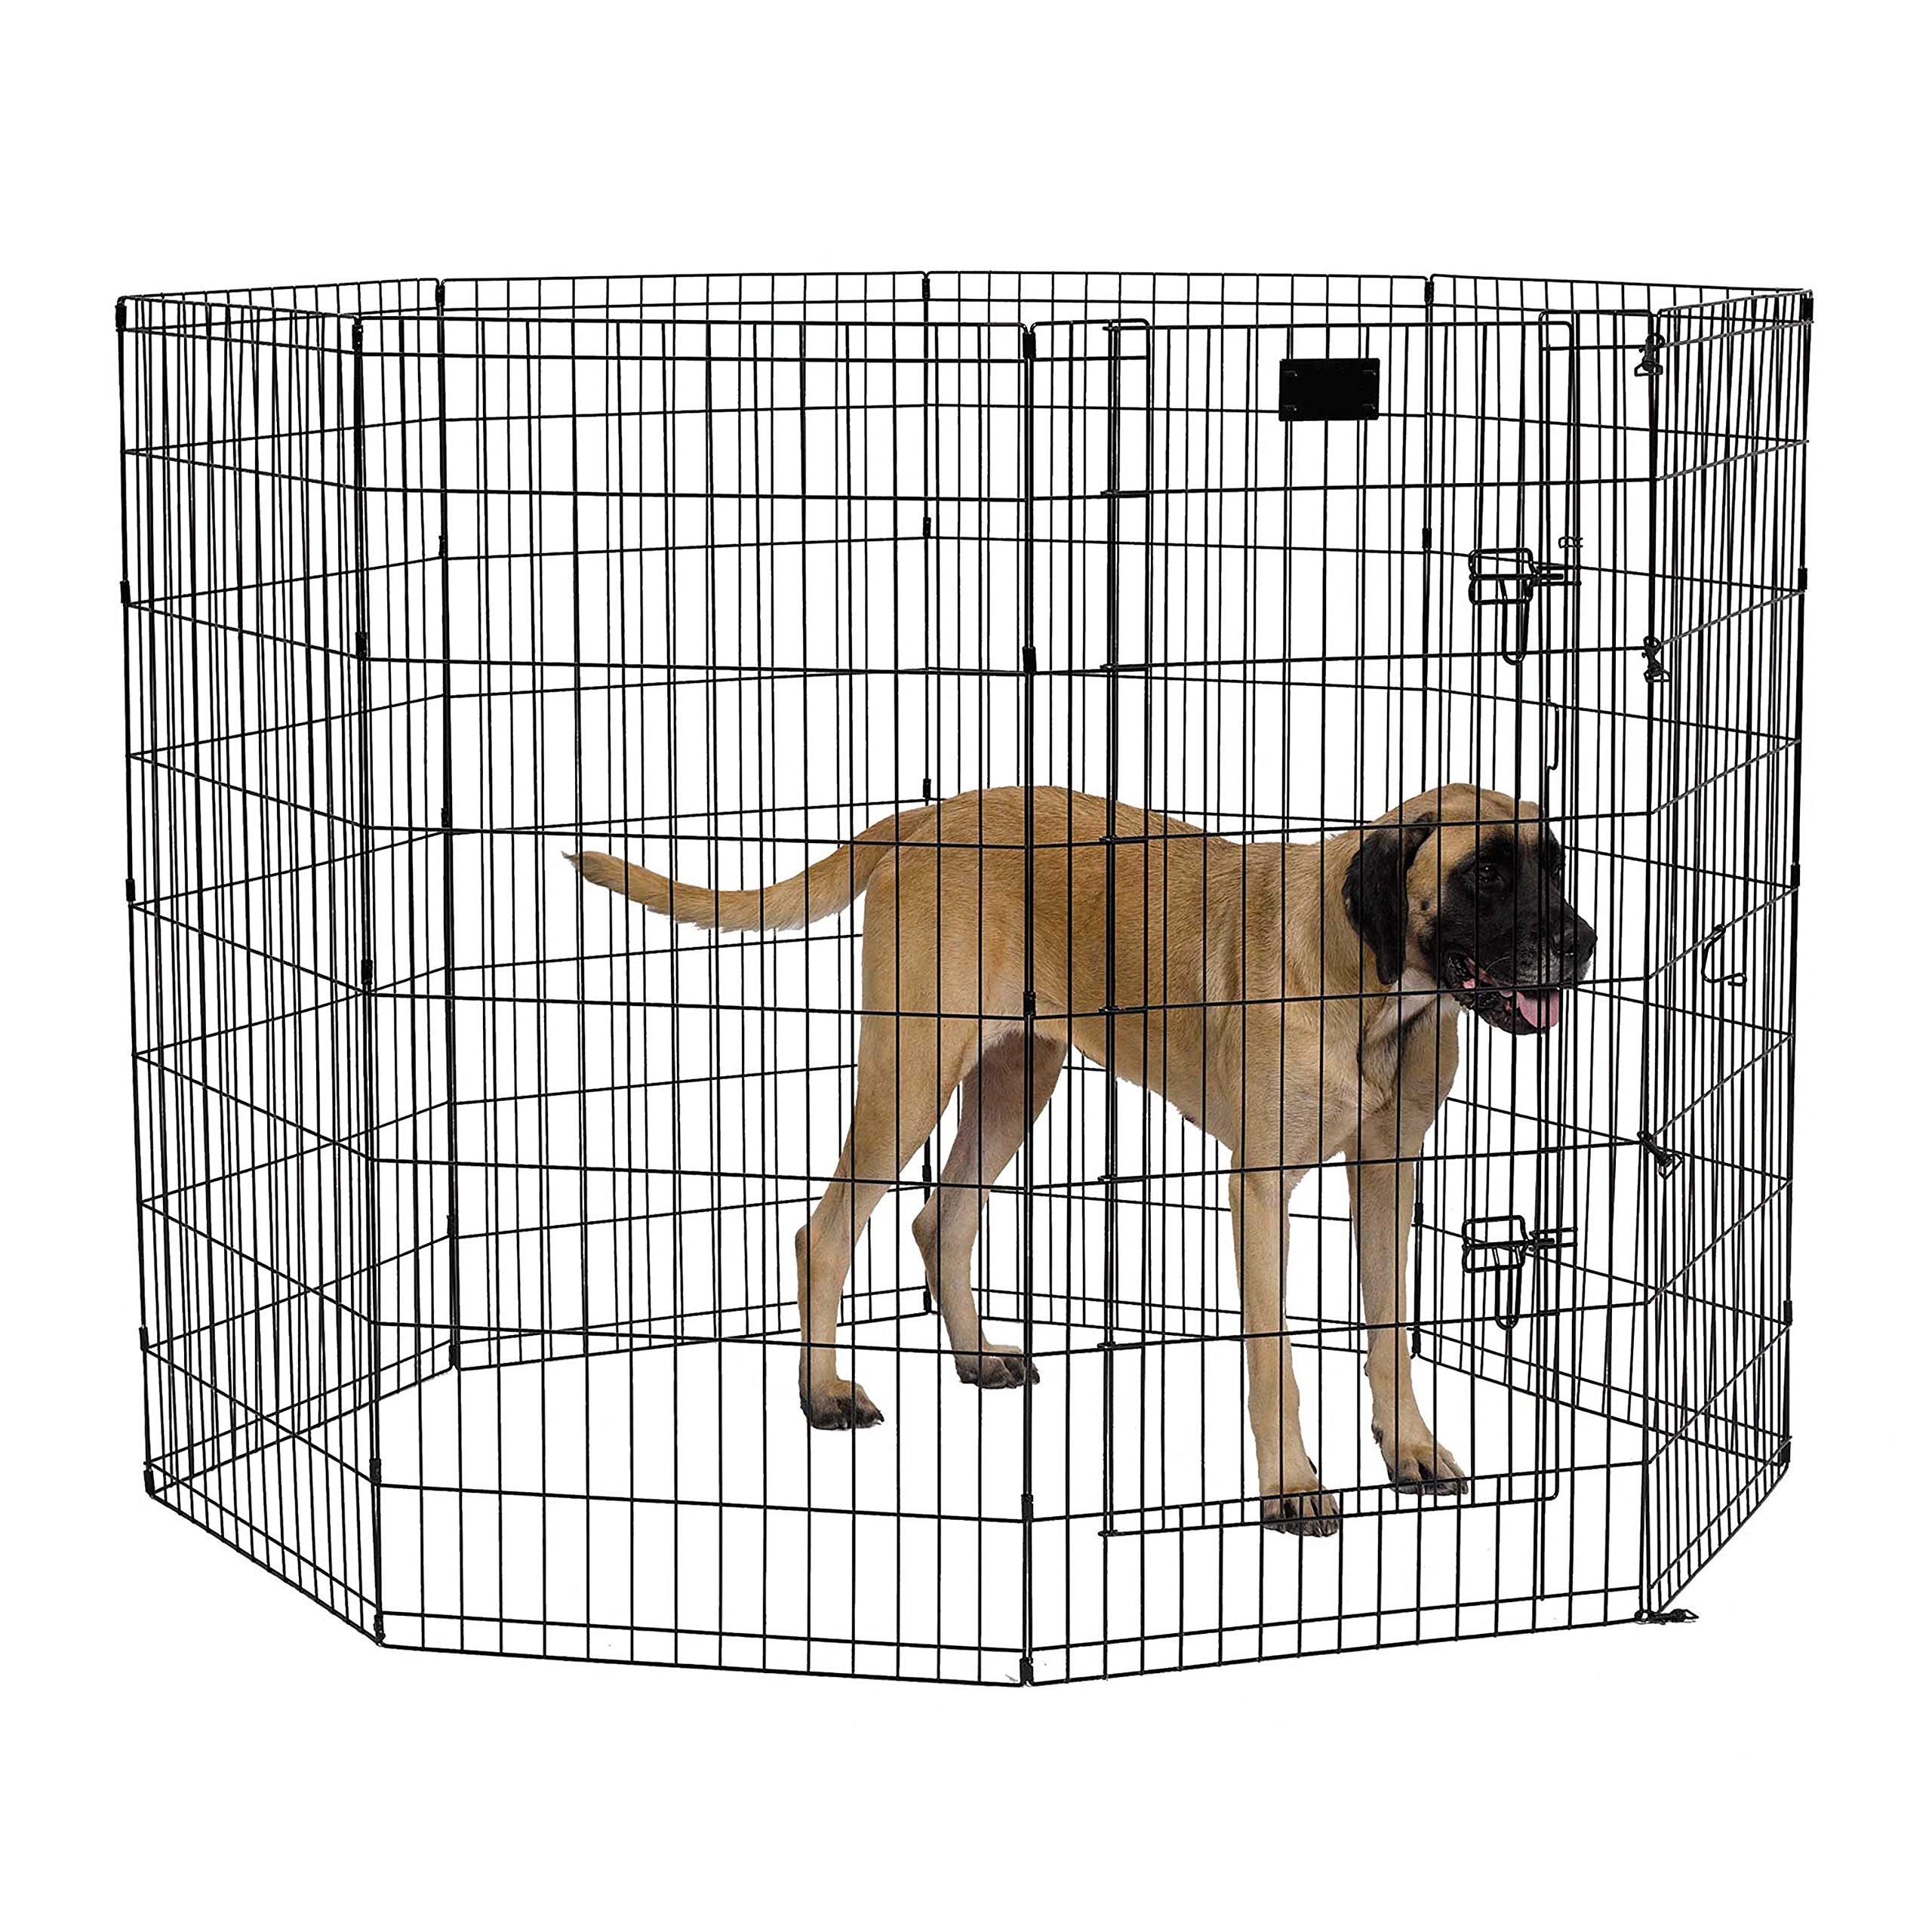 Indoor dog pens rust colored bath rugs